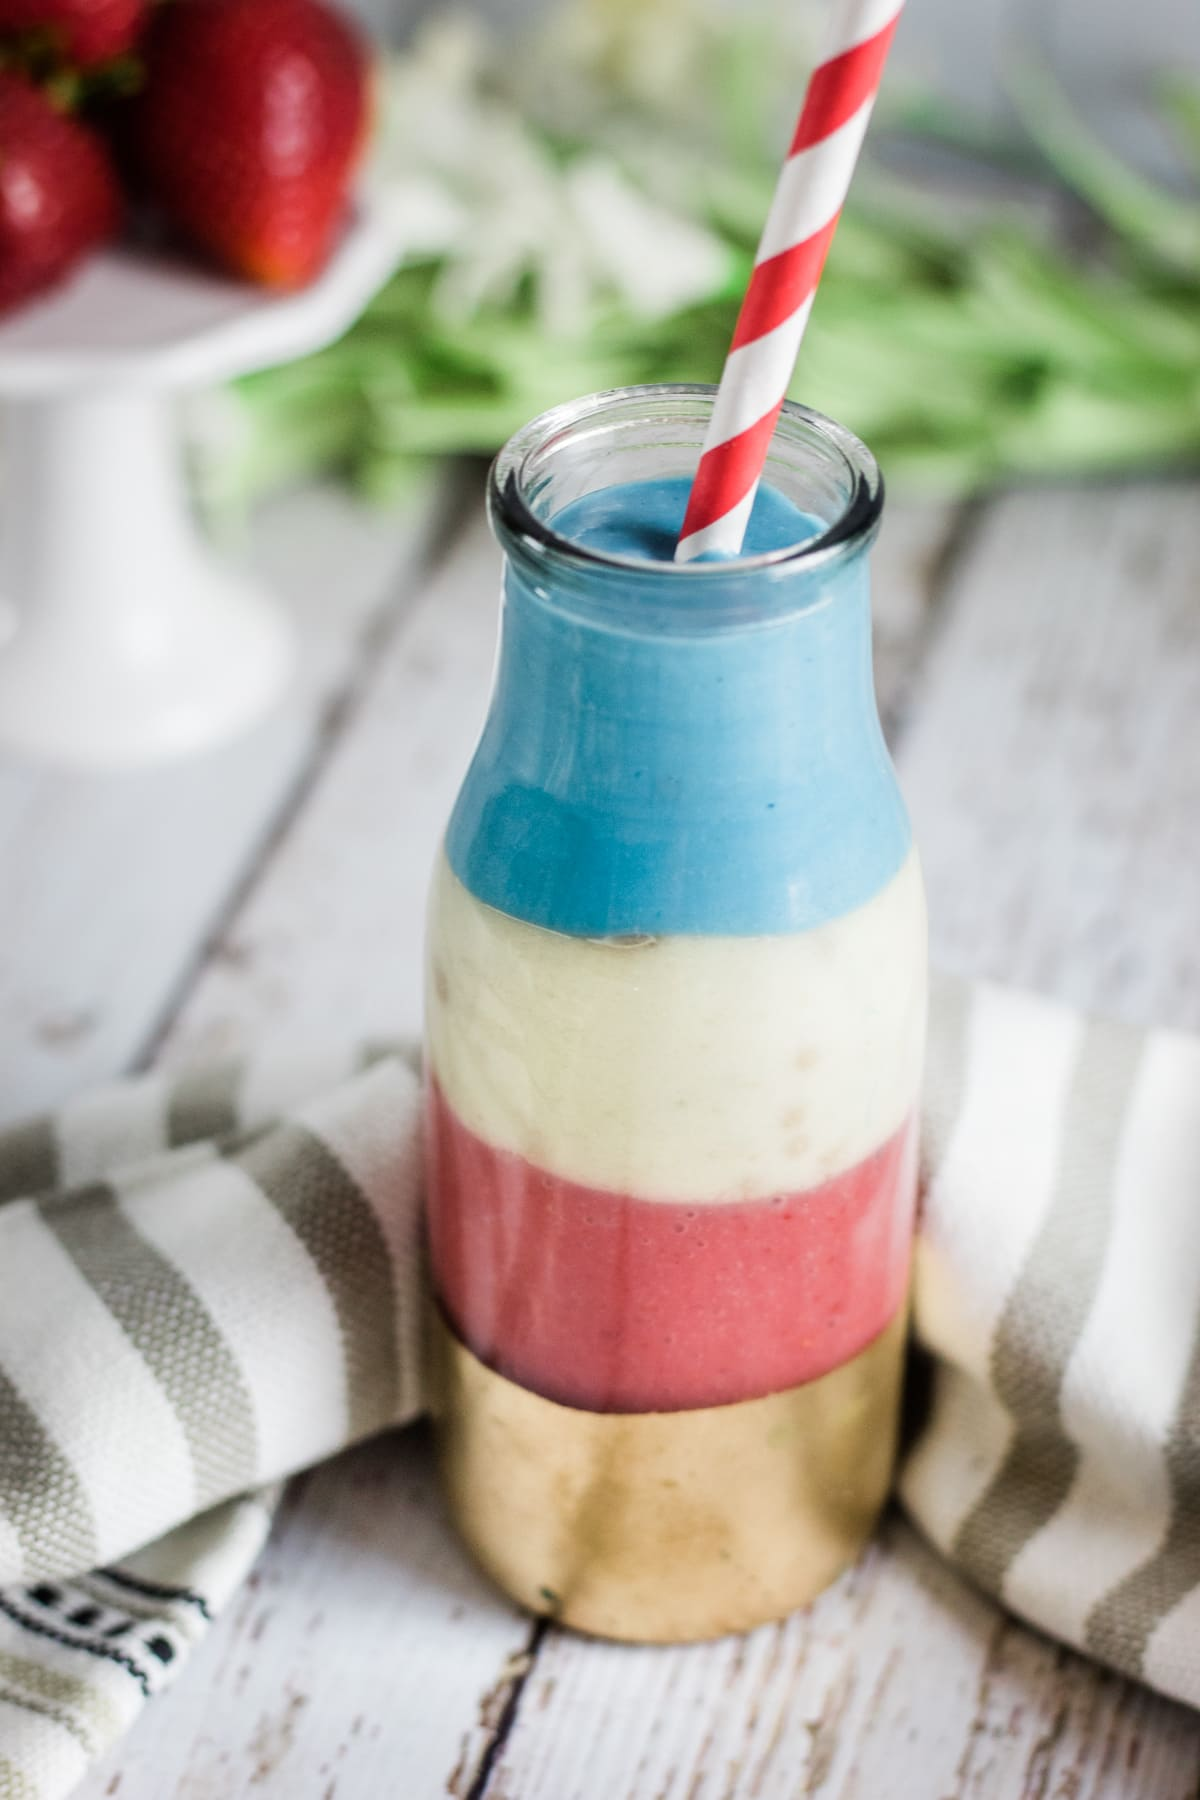 red white and blue smoothie with straw